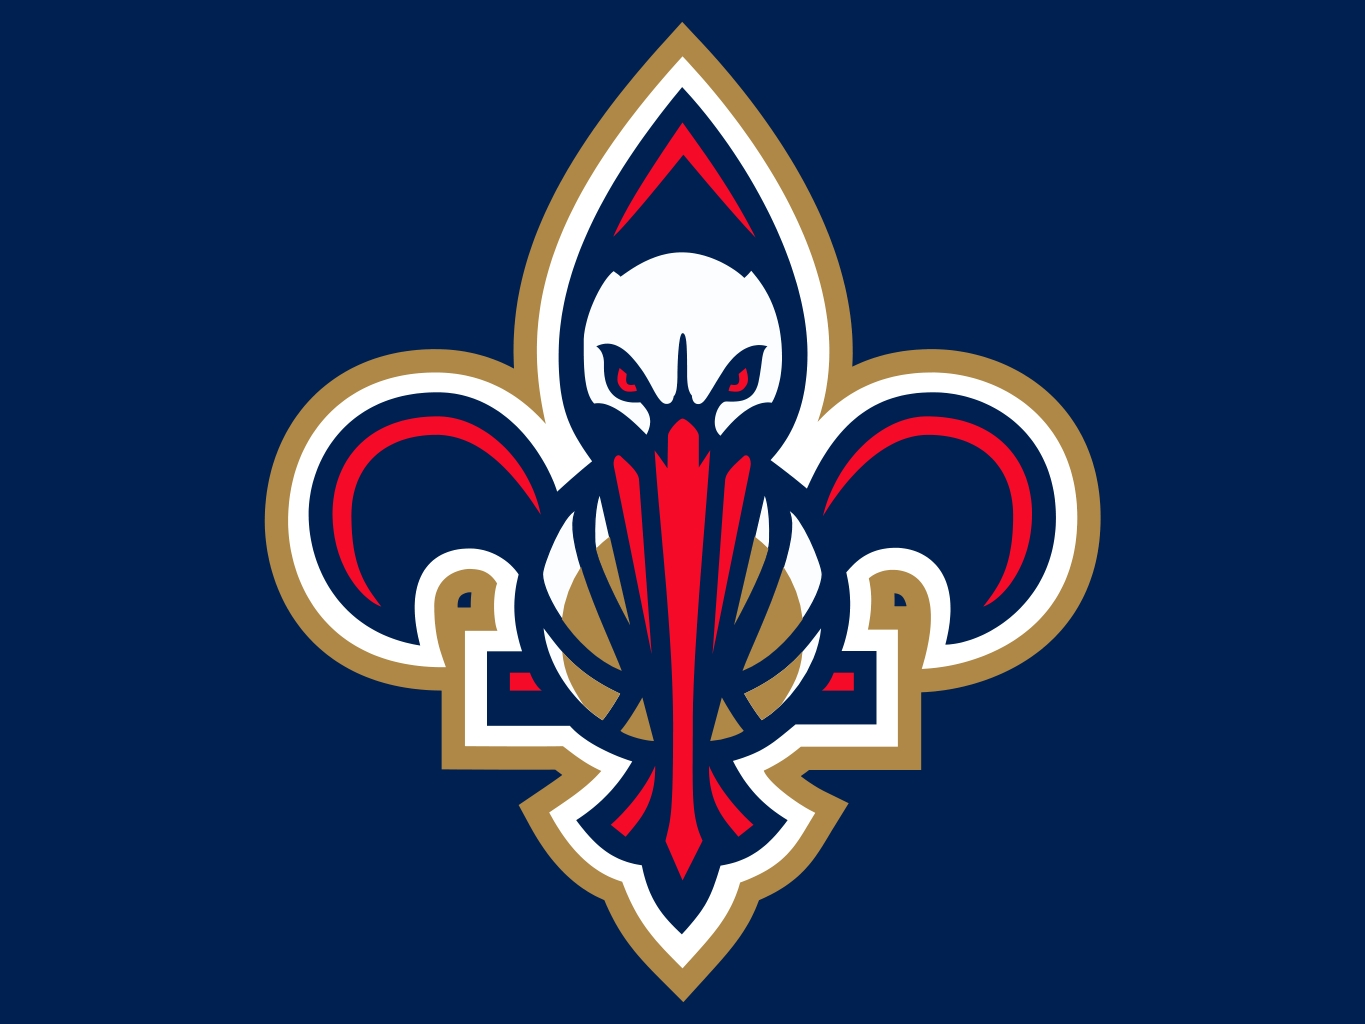 New Orleans Pelicans Wallpapers Sports Hq New Orleans Pelicans Pictures 4k Wallpapers 2019